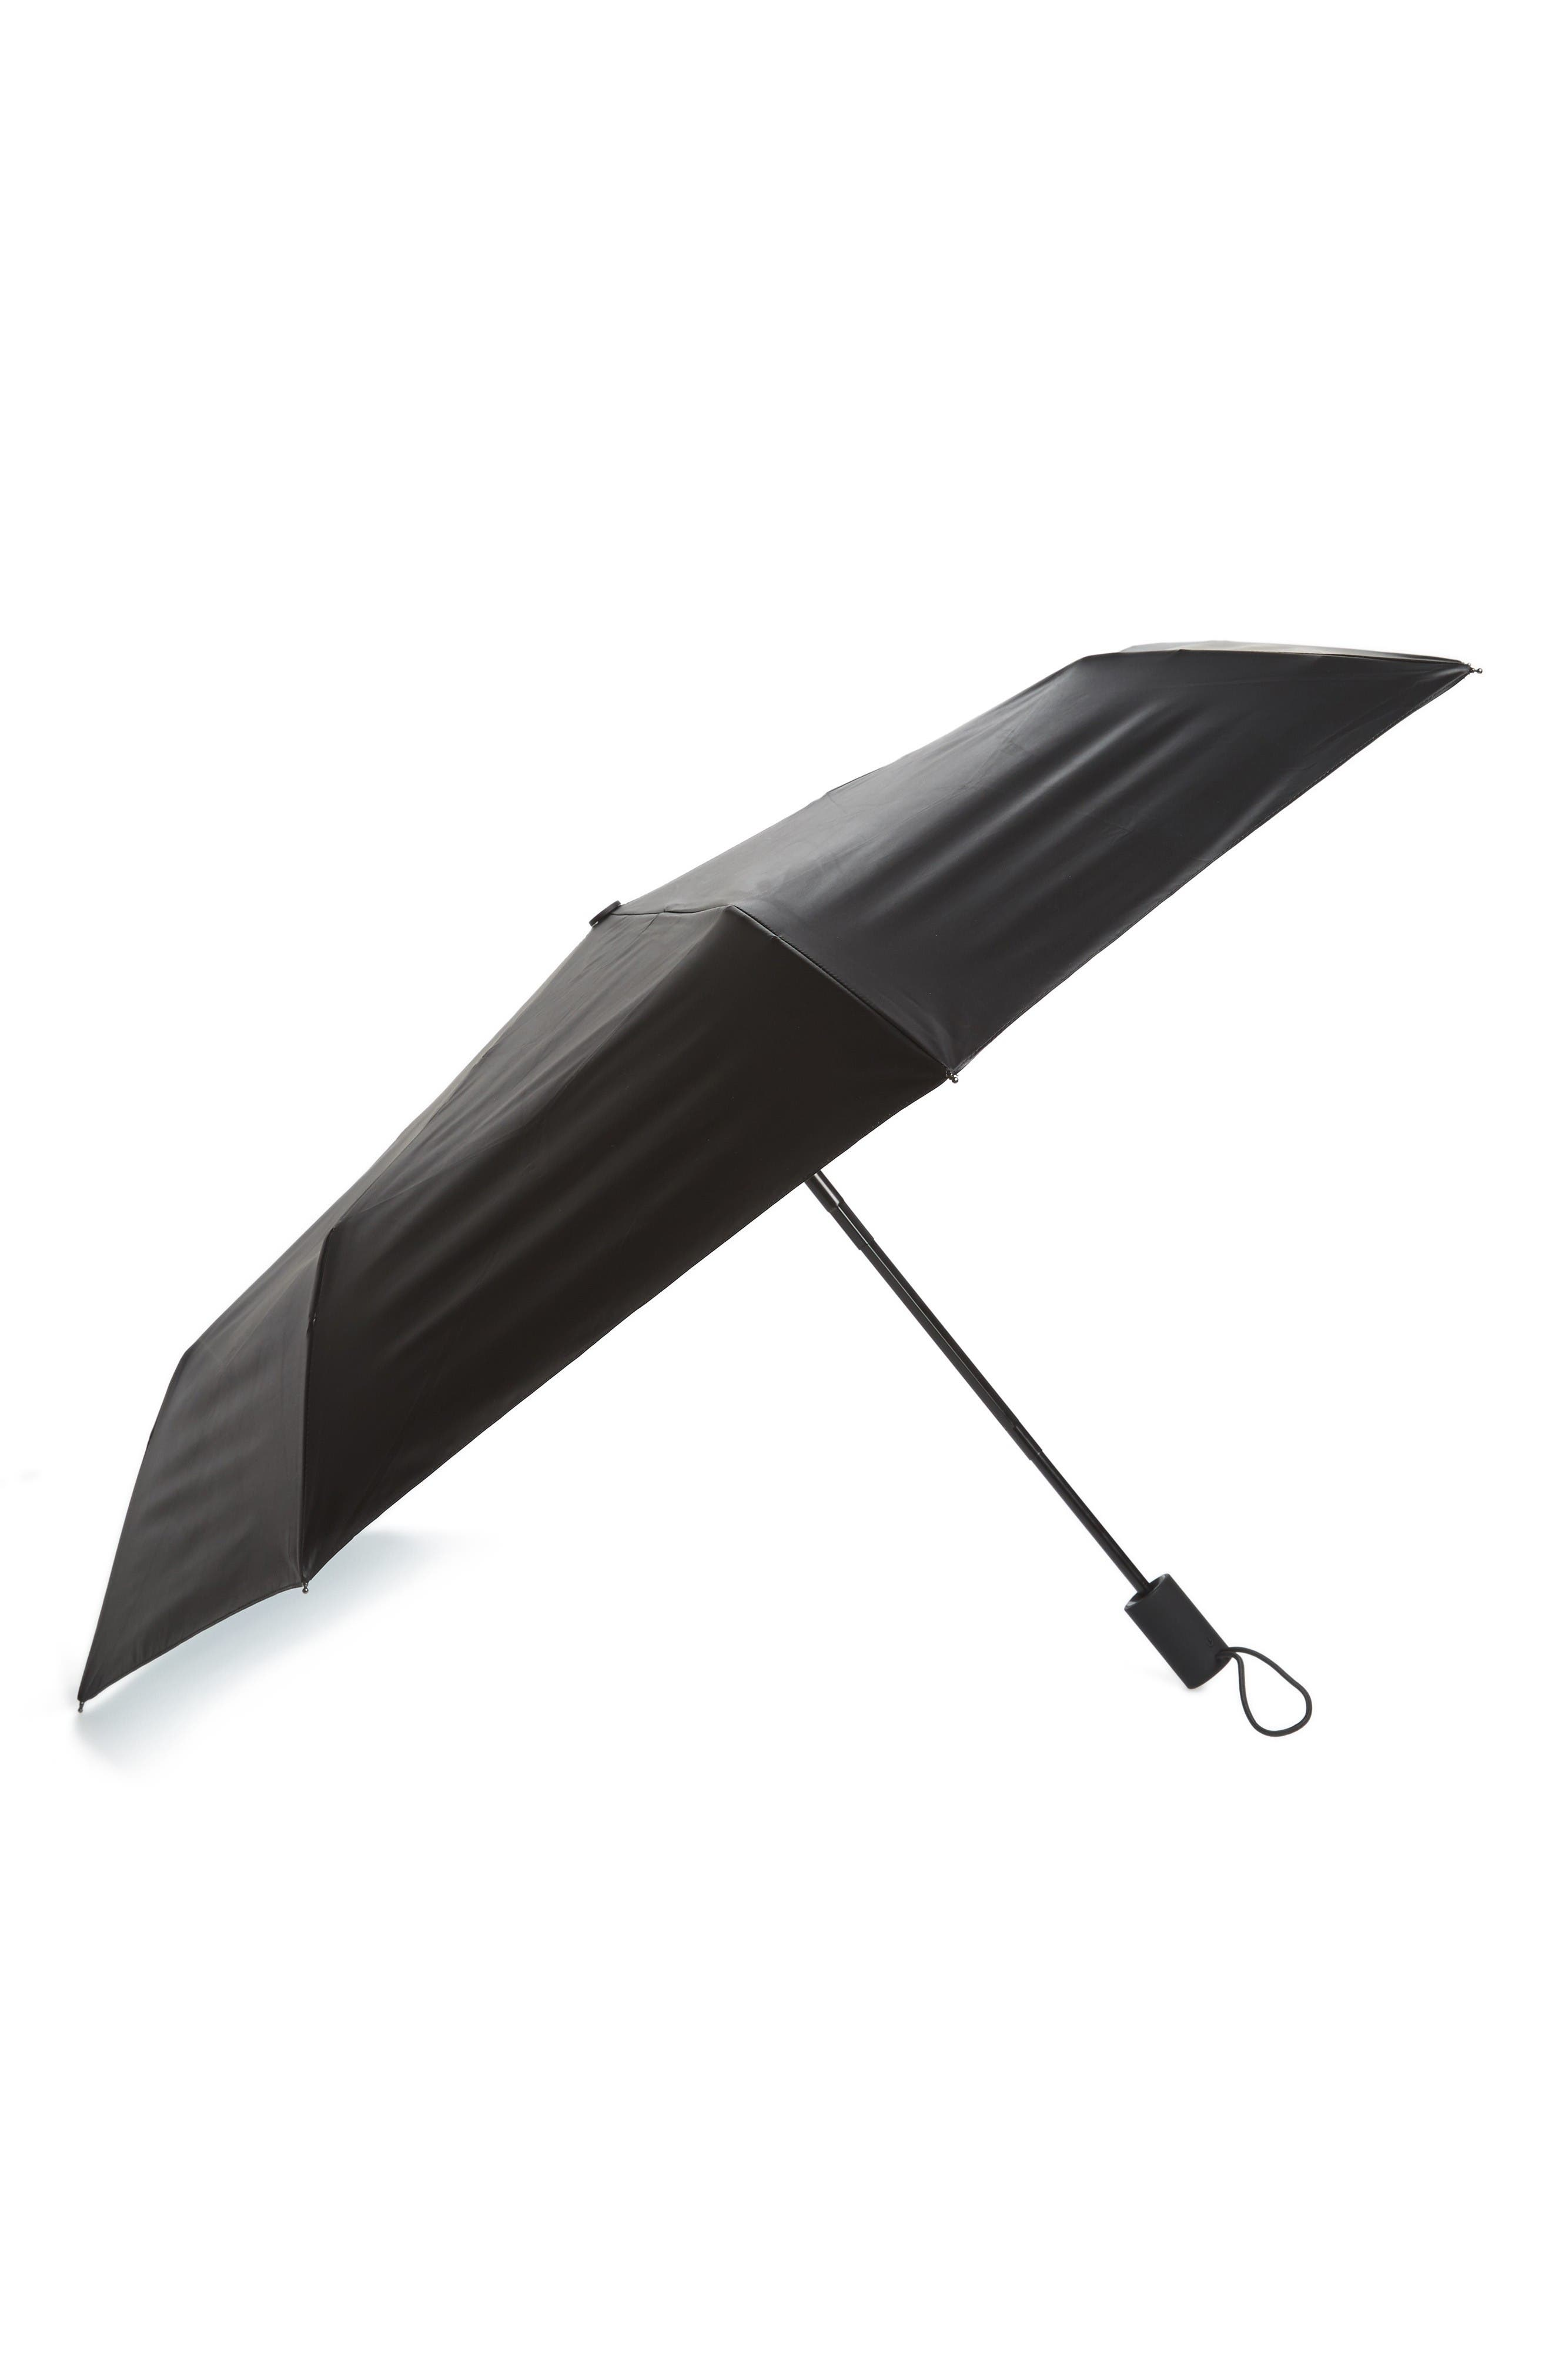 HAPPYSWEEDS Vacation Umbrella